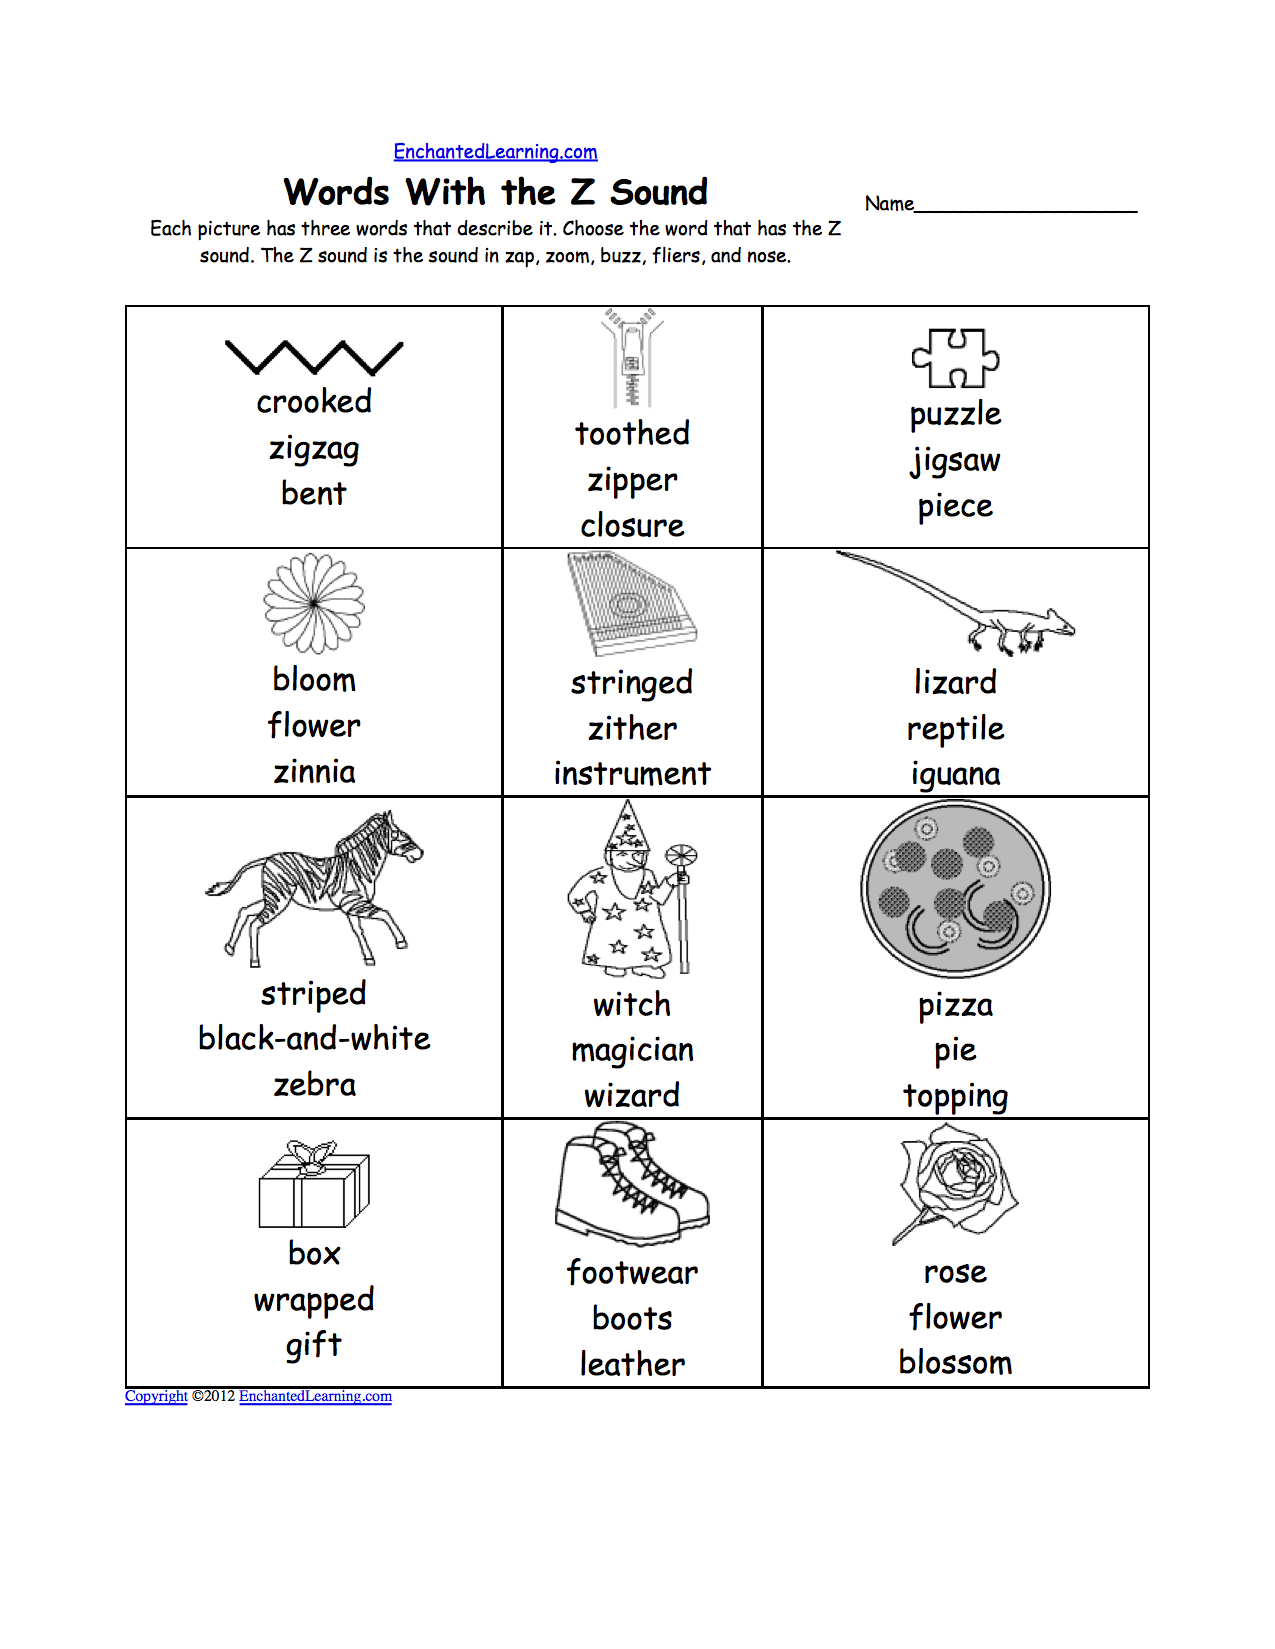 Aldiablosus  Picturesque Phonics Worksheets Multiple Choice Worksheets To Print  With Lovely Phonics Worksheets Multiple Choice Worksheets To Print  Enchantedlearningcom With Captivating Double The Consonant And Add Ed Worksheets Also Double Bubble Map Worksheet In Addition Suffixes Able And Ible Worksheets And Worksheets Year  As Well As Quantifiers Worksheet Additionally Adverbs Worksheets For Grade  From Enchantedlearningcom With Aldiablosus  Lovely Phonics Worksheets Multiple Choice Worksheets To Print  With Captivating Phonics Worksheets Multiple Choice Worksheets To Print  Enchantedlearningcom And Picturesque Double The Consonant And Add Ed Worksheets Also Double Bubble Map Worksheet In Addition Suffixes Able And Ible Worksheets From Enchantedlearningcom